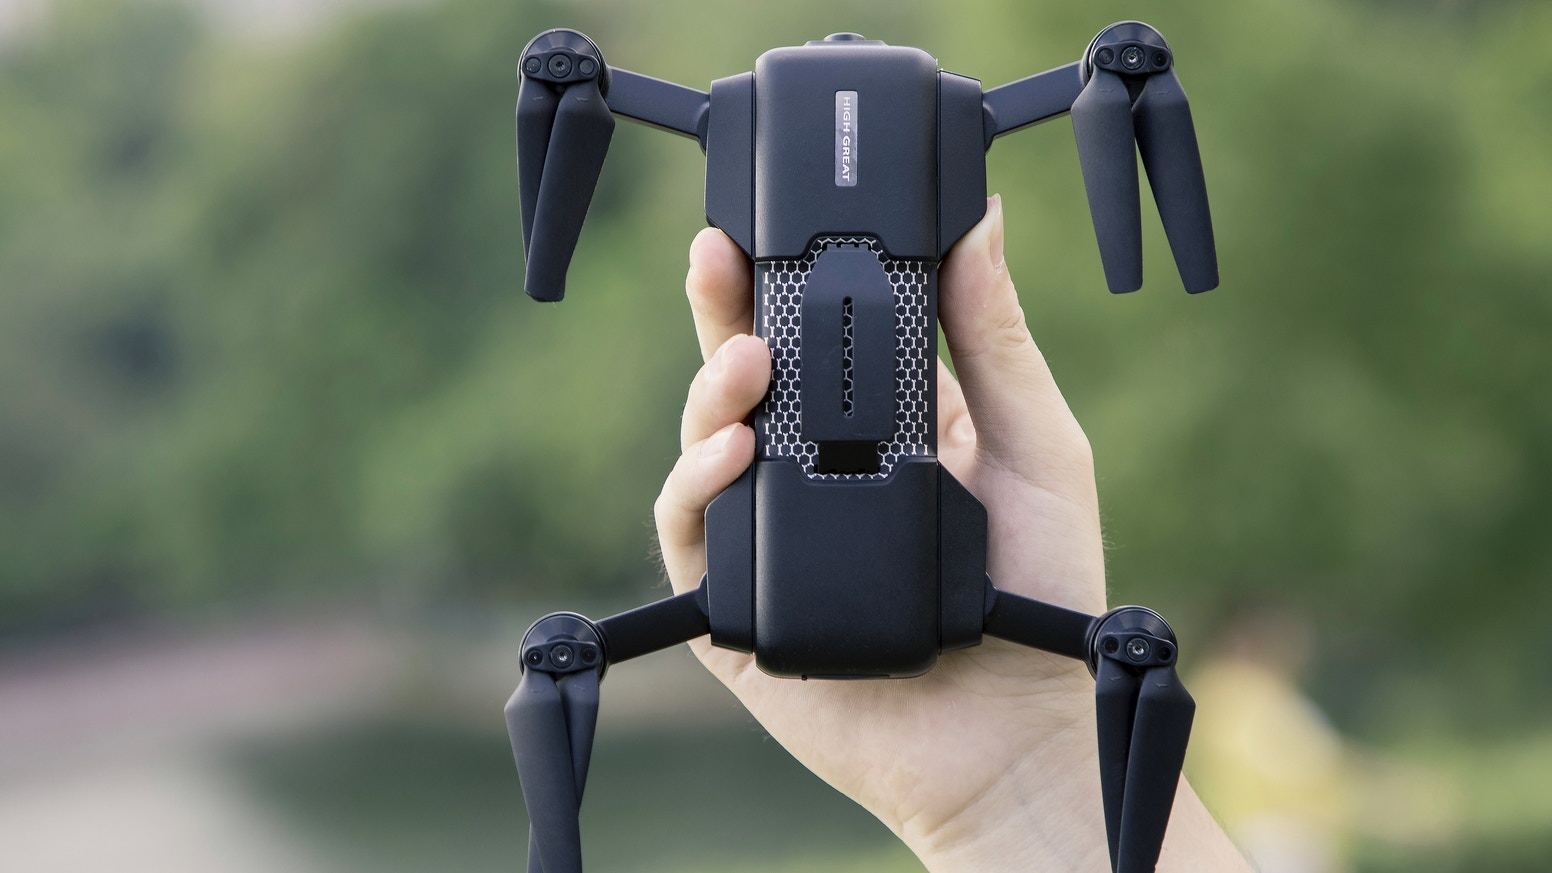 Mark Drone: The Ultra-intelligent 4K foldable drone, $239 is the top crowdfunding project launched today. Mark Drone: The Ultra-intelligent 4K foldable drone, $239 raised over $2597028 from 1193 backers. Other top projects include Vast: The Mysterious Manor, Transmogrify: A challenging sci-fi puzzle platformer, Flaming Pyramids (Canceled)...